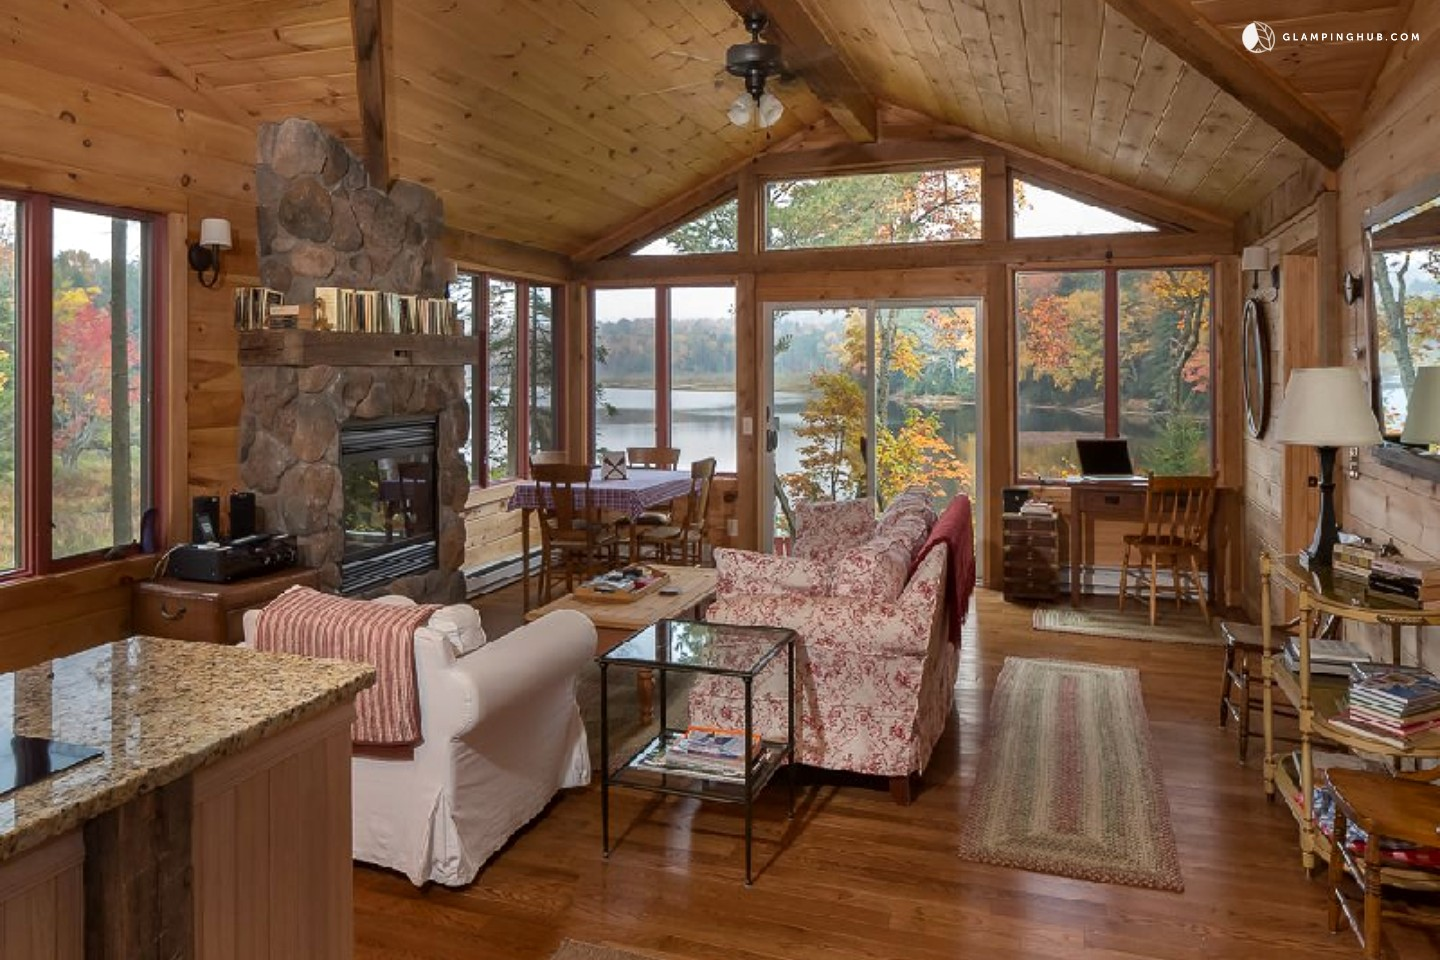 8 Cozy Cabins Near Nyc To Rent For A Winter Getaway